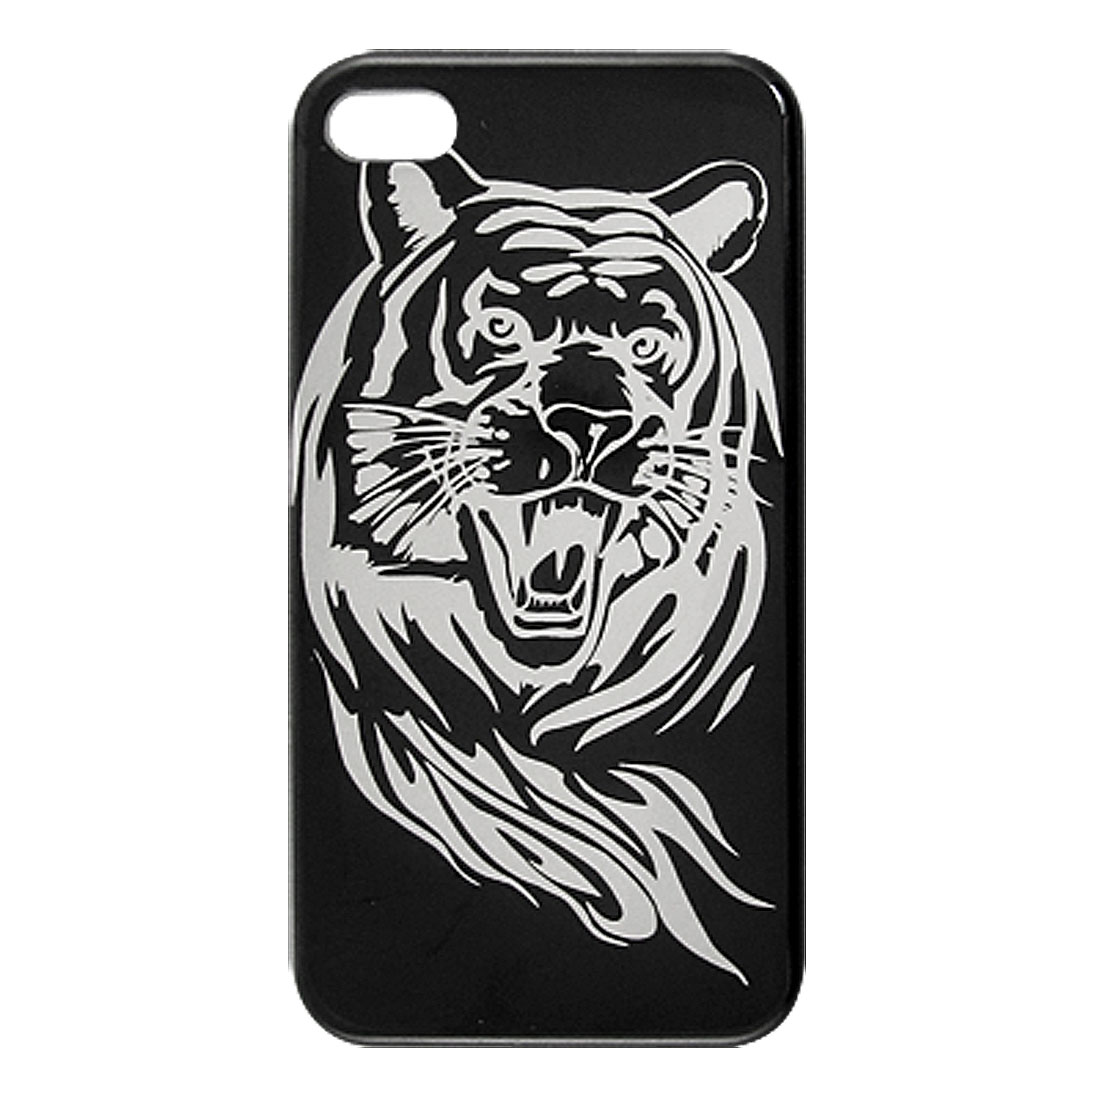 Black Silver Tone Hard Tiger Print Back Case Cover for iPhone 4 4S 4G 4GS